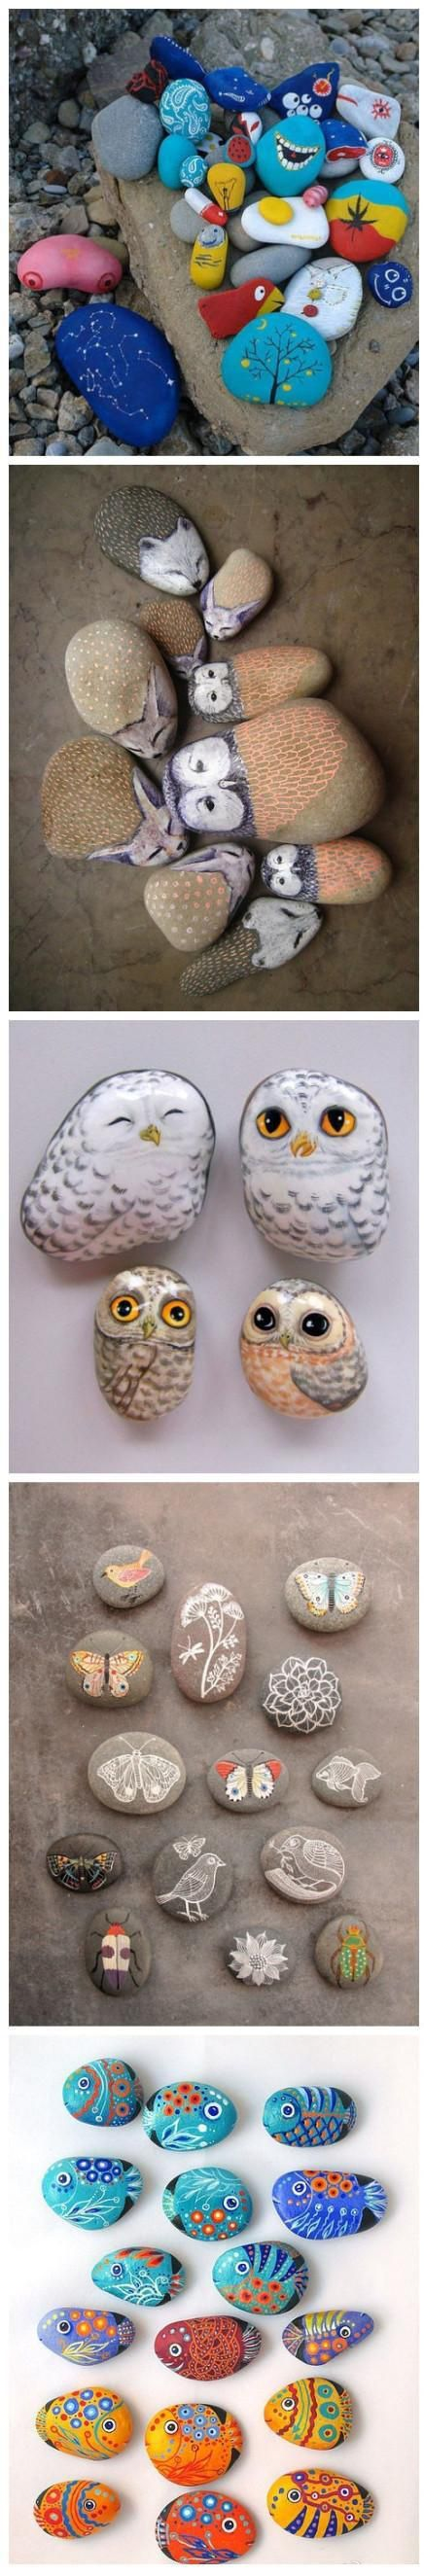 So cute Painting rocks summer activity craft time fun with kids. Design animals, diy, or pictures on the stones. Use the stones as a crafty centerpiece on coffee table, use them as on bookshelves in a bowl as centerpiece on the dinner table, nightstand... use them to create stories as part of summer night time ritual and more.